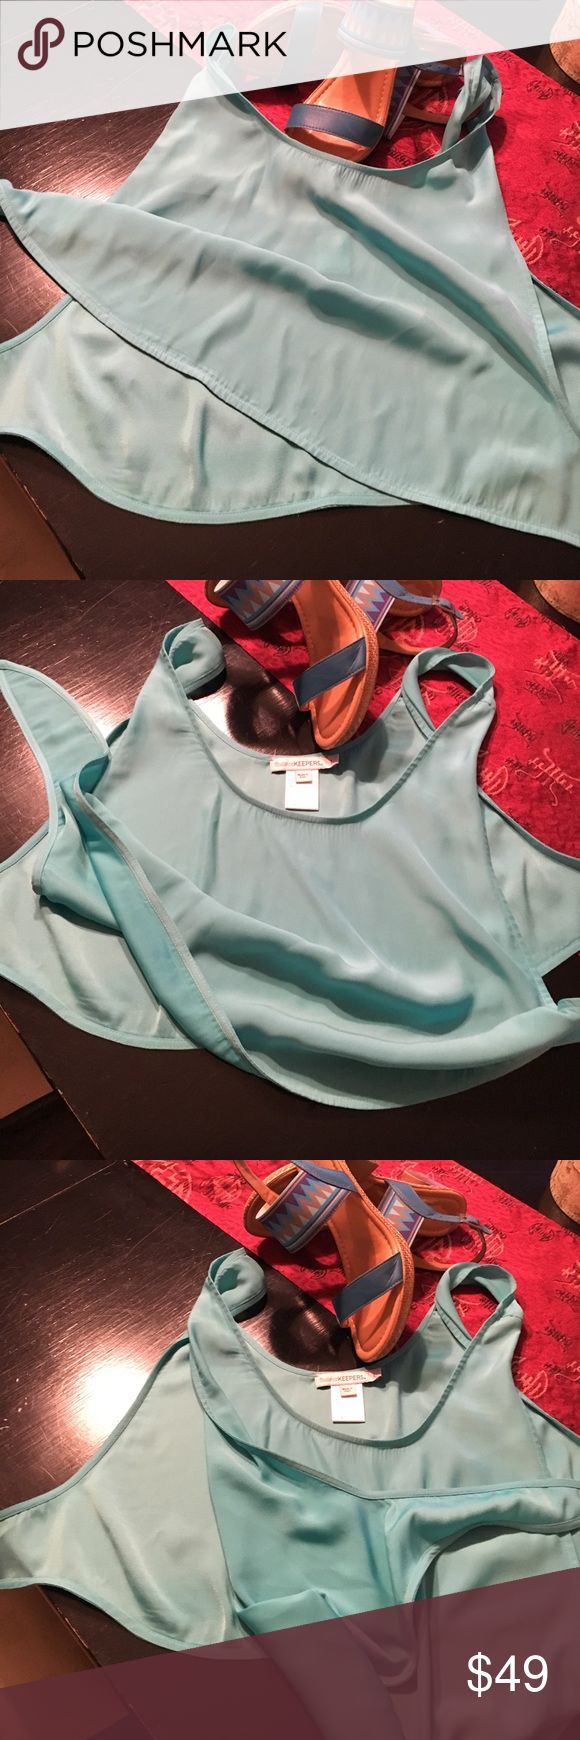 Finders keepers top Finders keepers open side turquoise top Finders Keepers Tops Crop Tops